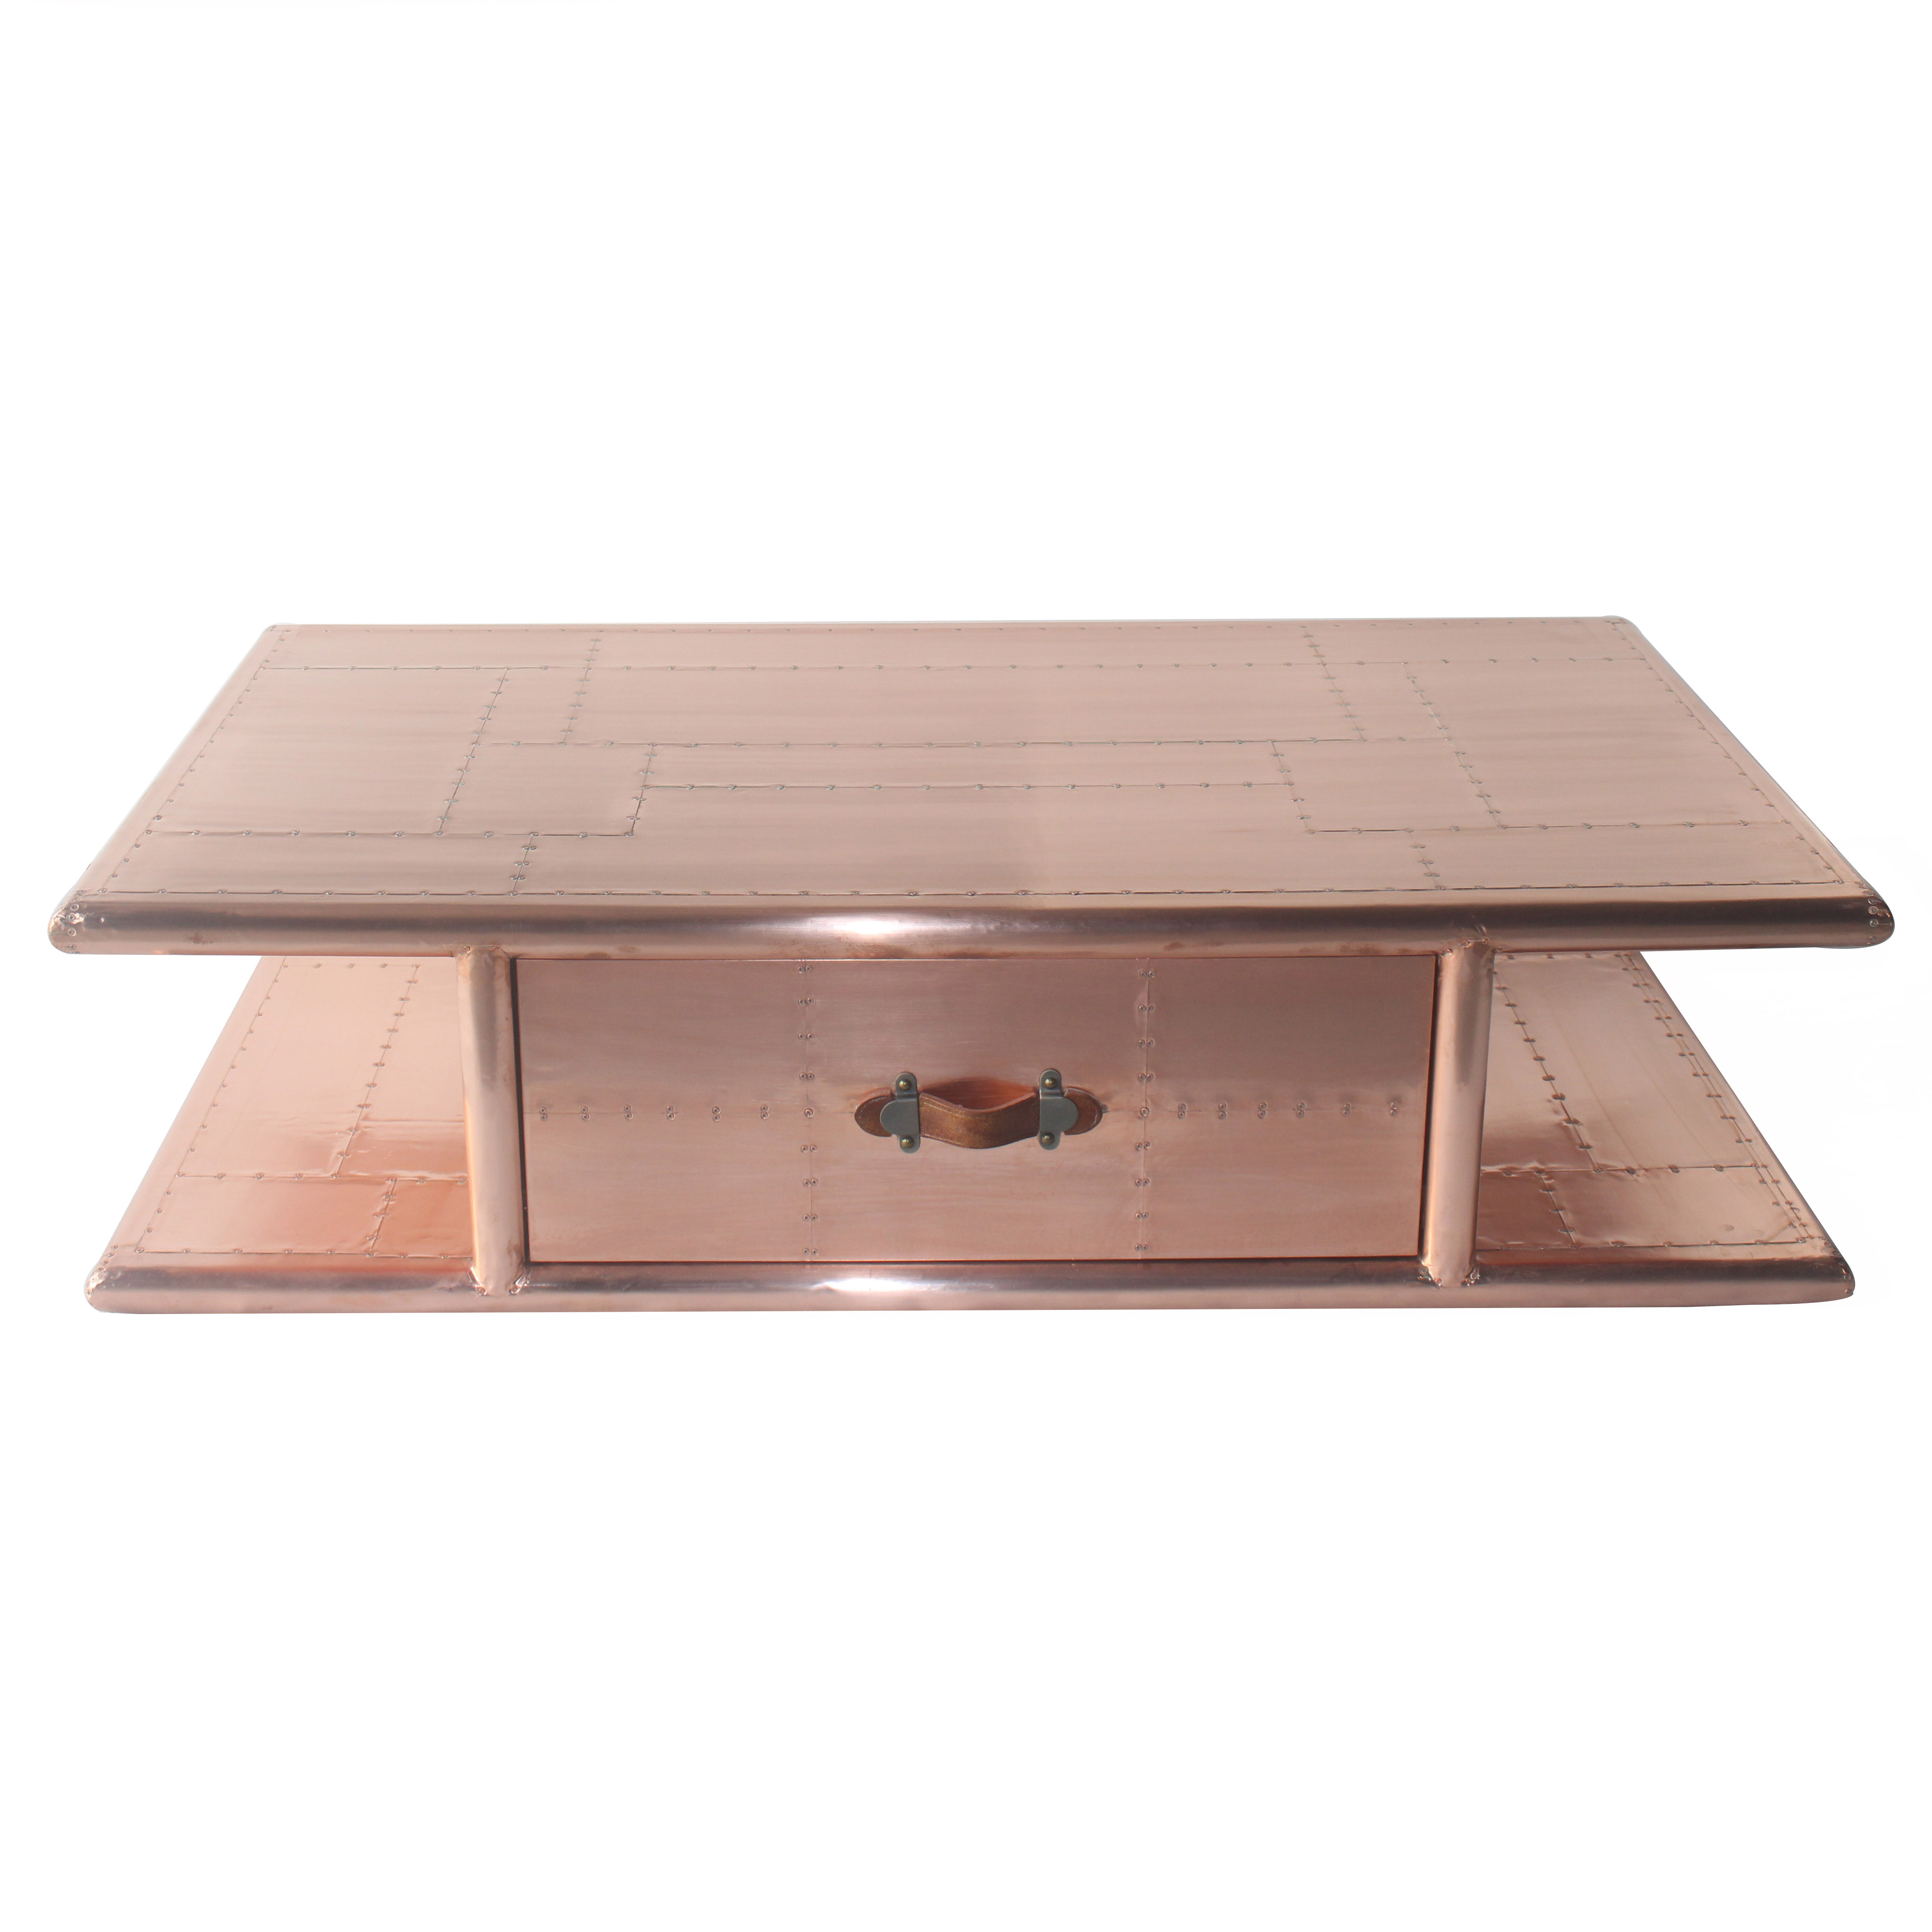 Riveted Vintage Copper Aviation Coffee Table with Drawer Use In Living Room Cafe